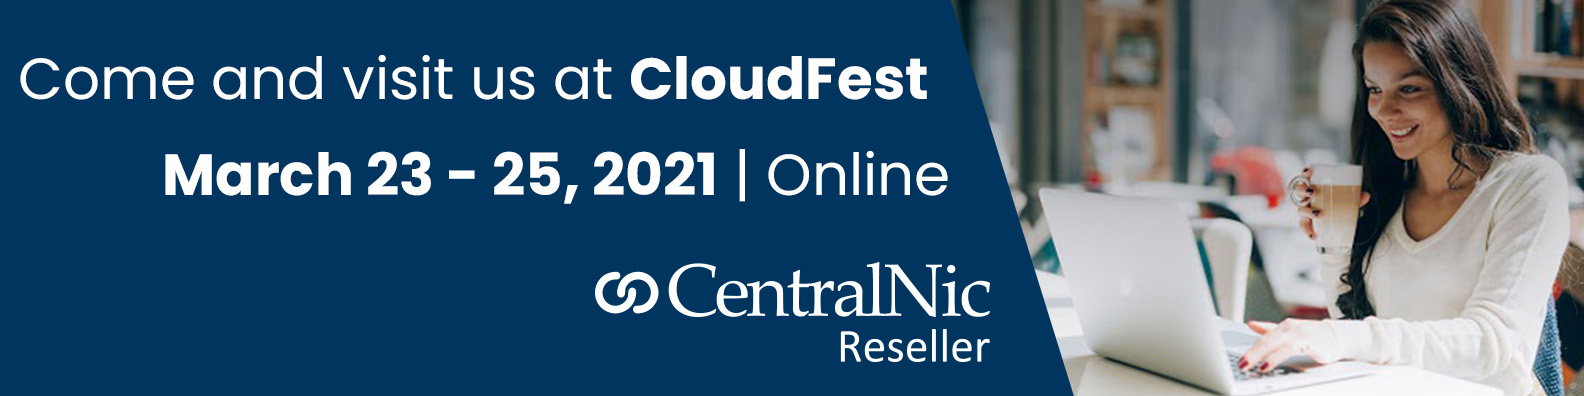 CentralNIC Reseller Division Cloudfest 2021